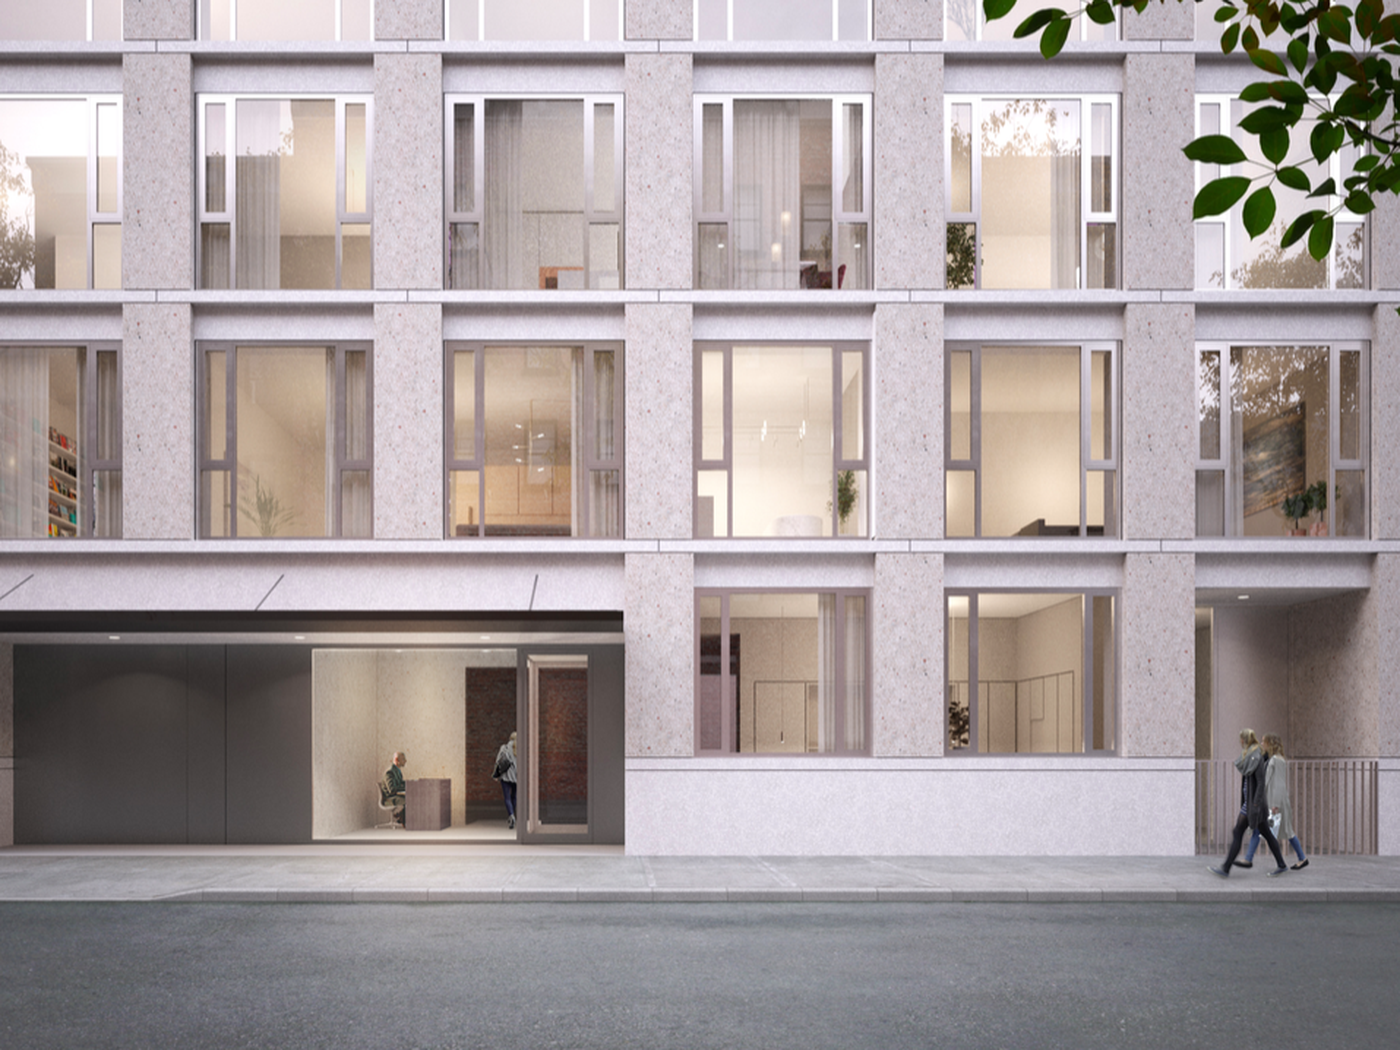 David Chipperfield S Unchanged West Village Condo Decried As Imperious By Lpc Facade Architecture Brick Architecture Brick Apartments